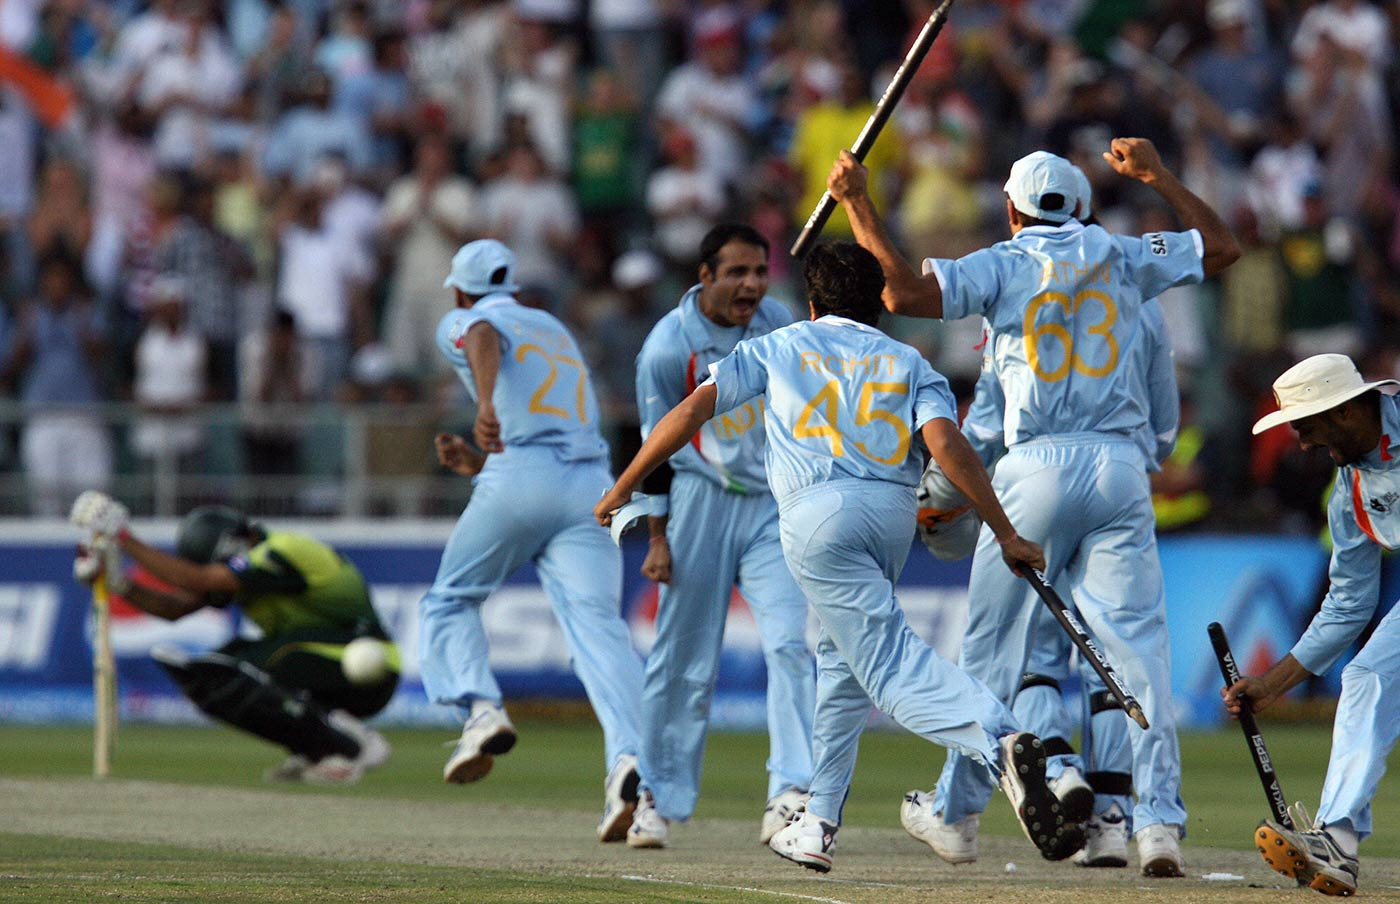 India's 2007 World T20 win: the media and the fans were always going to rate Dhoni's decision to have Joginder Sharma bowl the last over based on the result